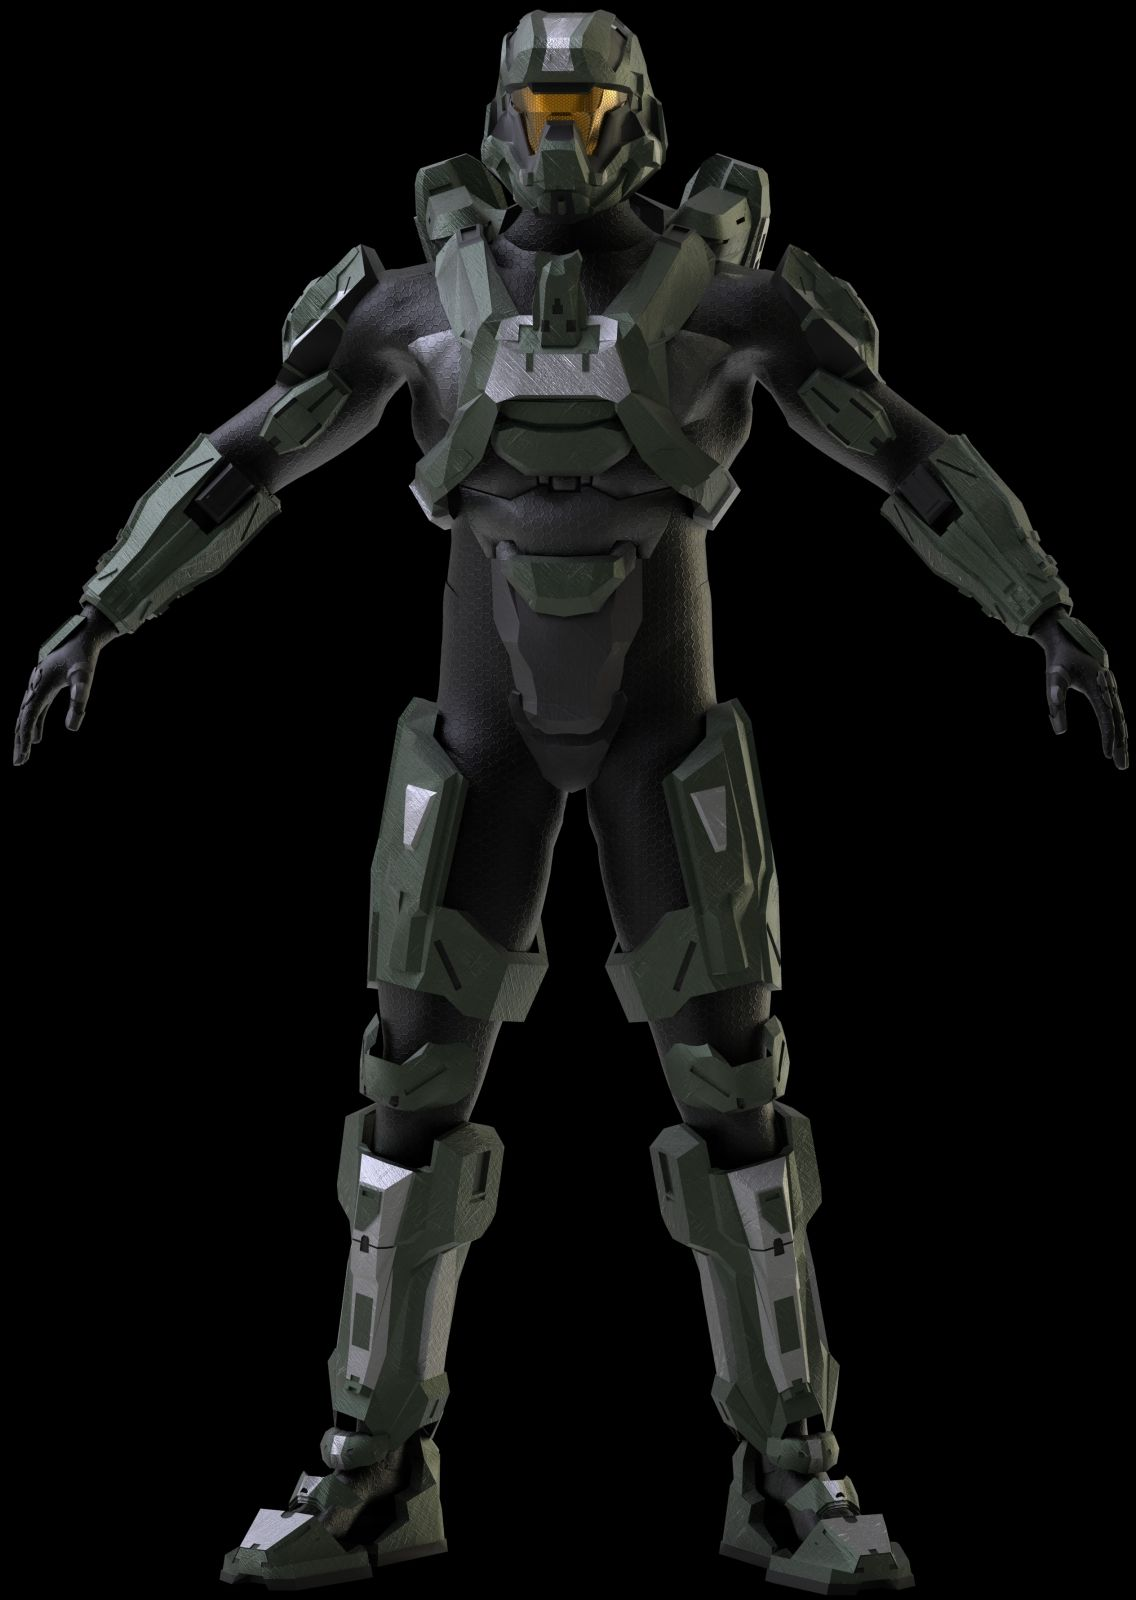 Halo 4 Recruit armor (3D Model build) - Page 3 | Halo